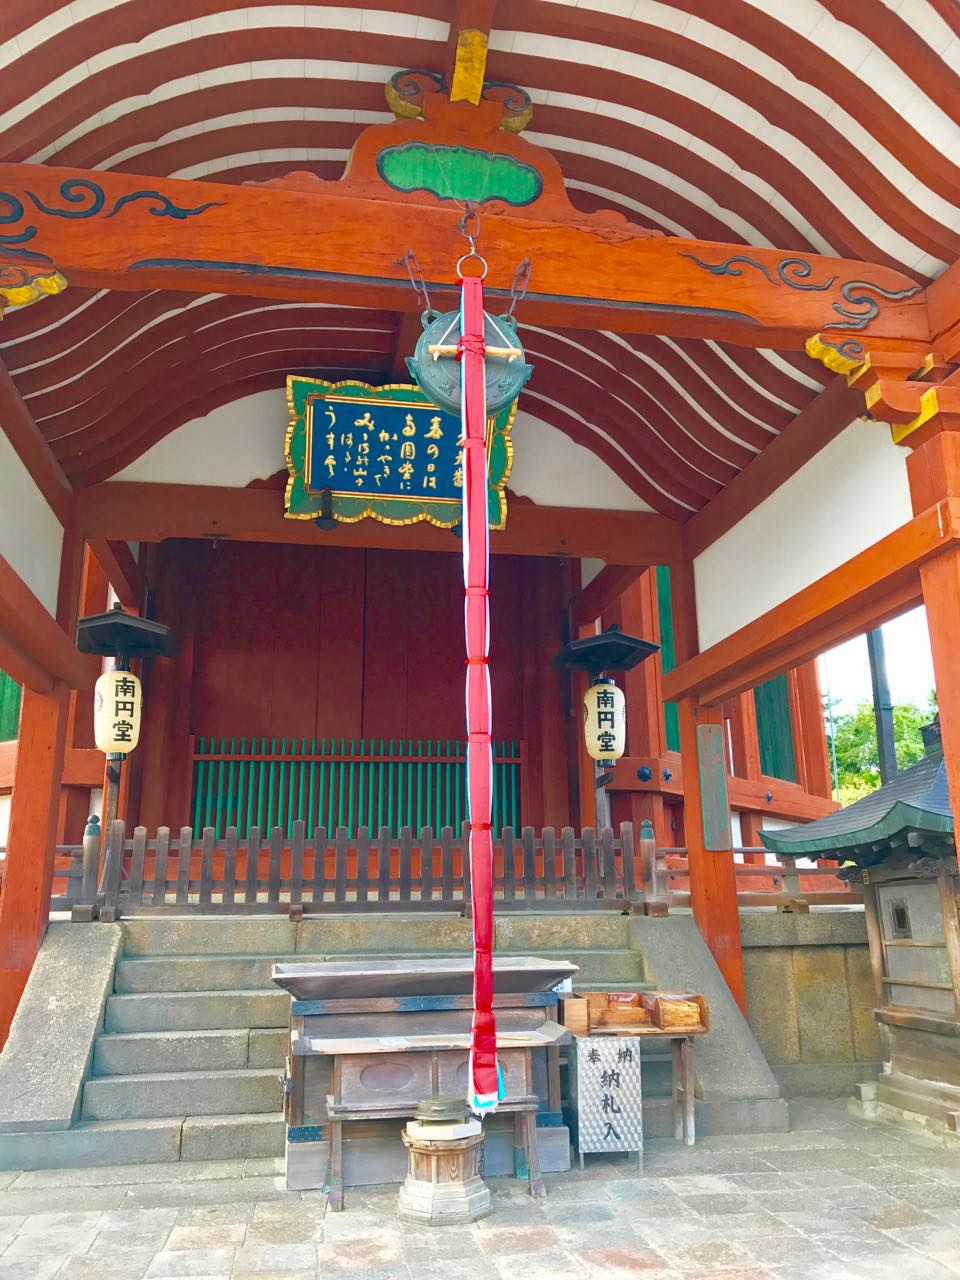 Pilgrims ring the bell here (attached to the long red rope) at Kofokuji Temple in Japan to alert the gods of their presence.